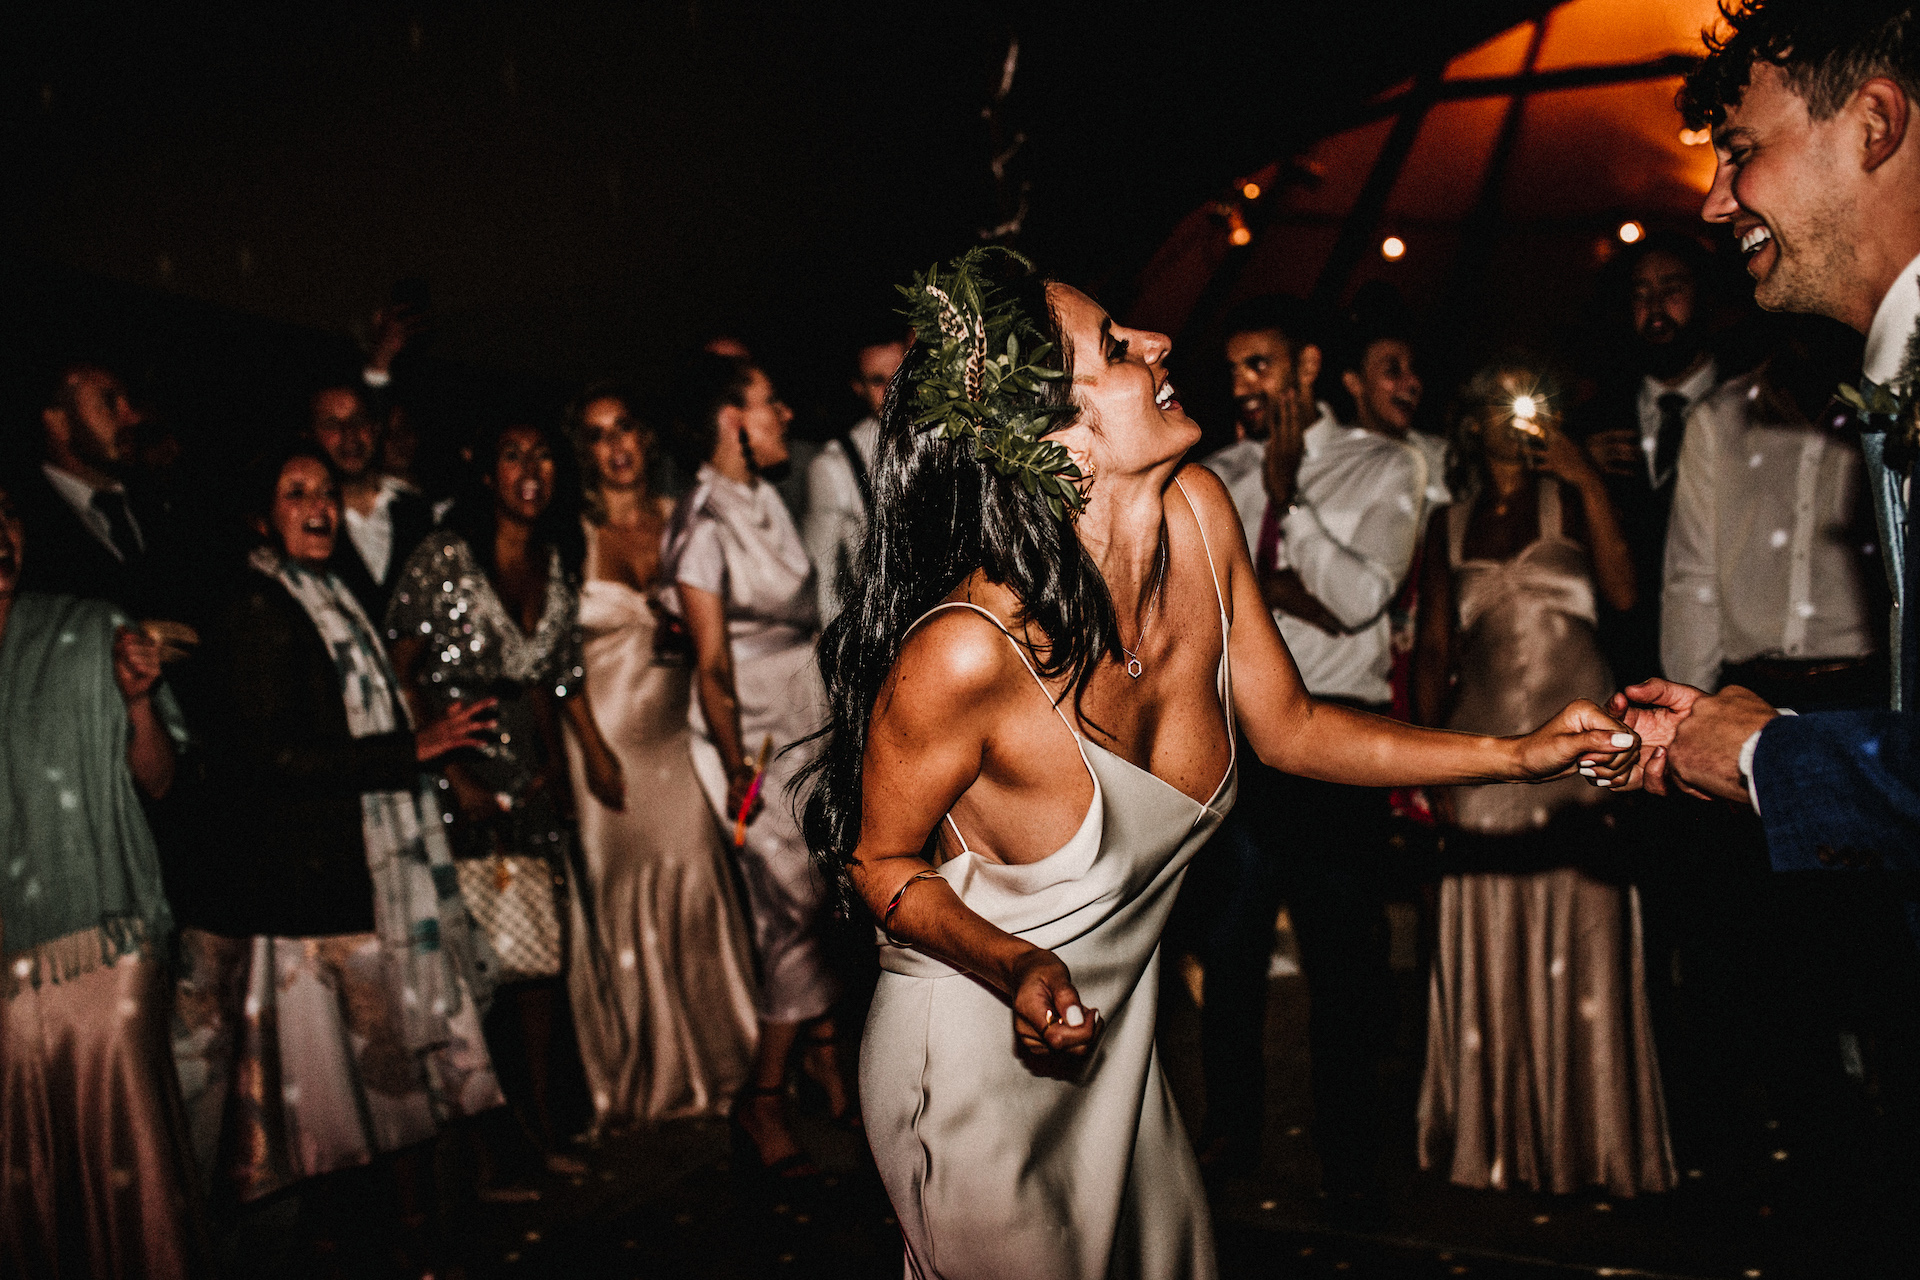 PapaKåta couple Hayley & Luke's Teepee Wedding in Ascott-Under-Wychwood, Oxon captured by Carla Blain Photography- The first dance